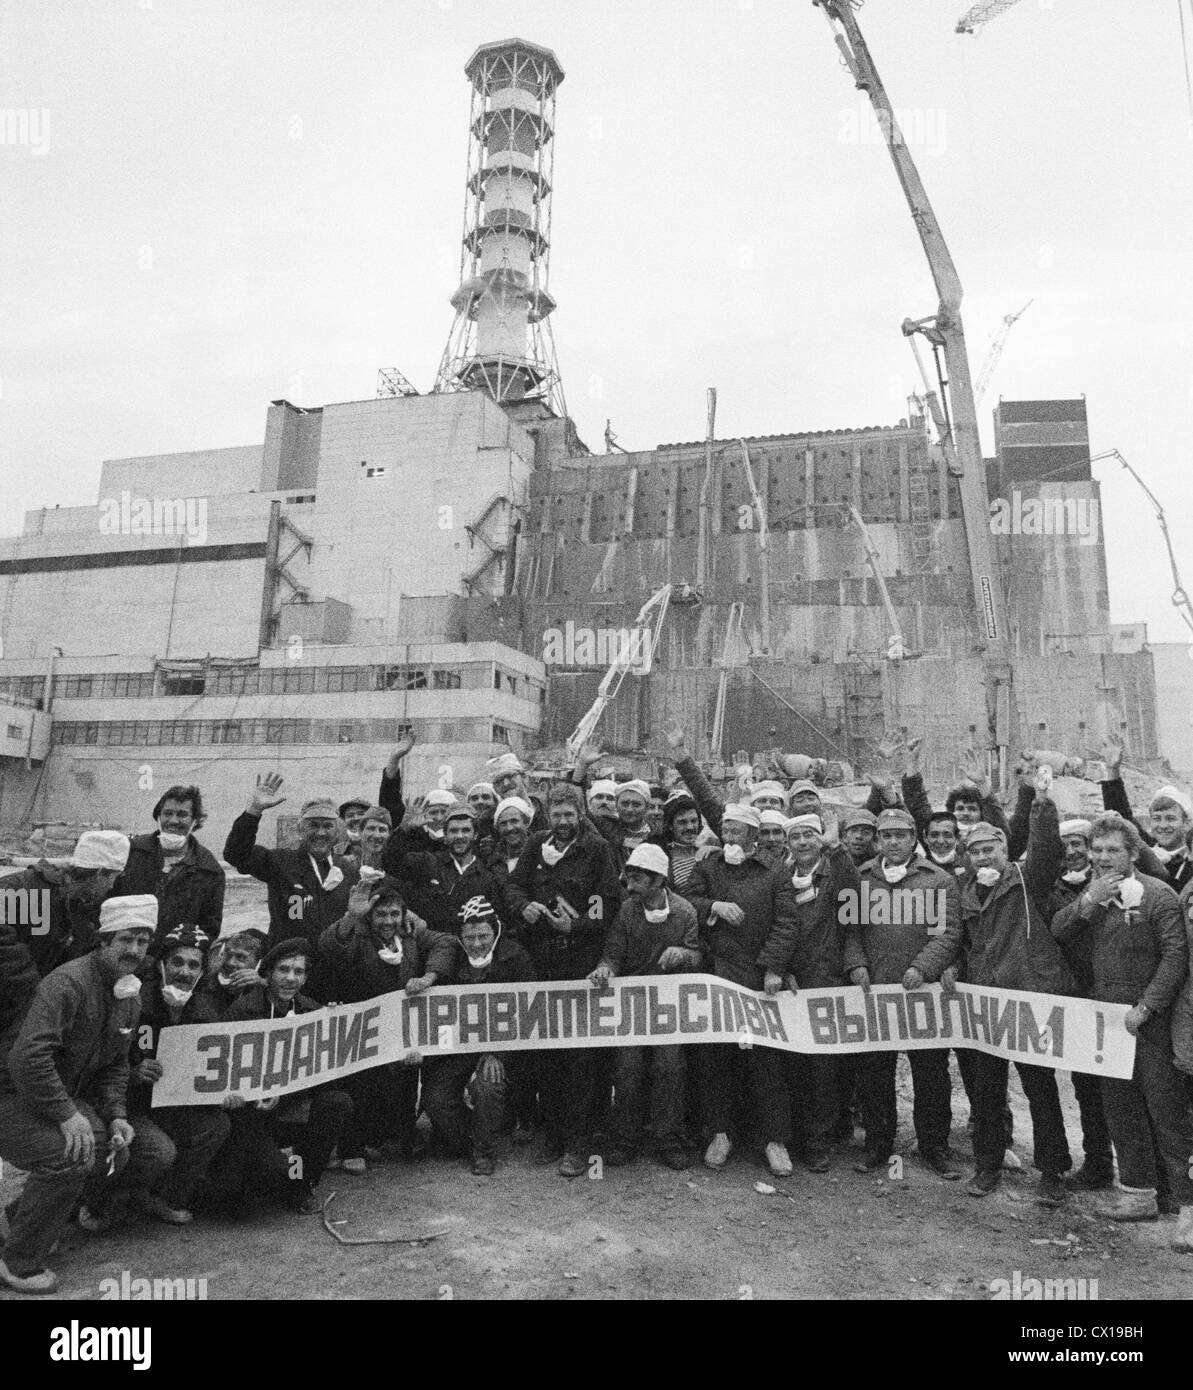 The participants of the Chernobyl disaster management are pictured near the Chernobyl Nuclear Power Plant. Photo - Stock Image